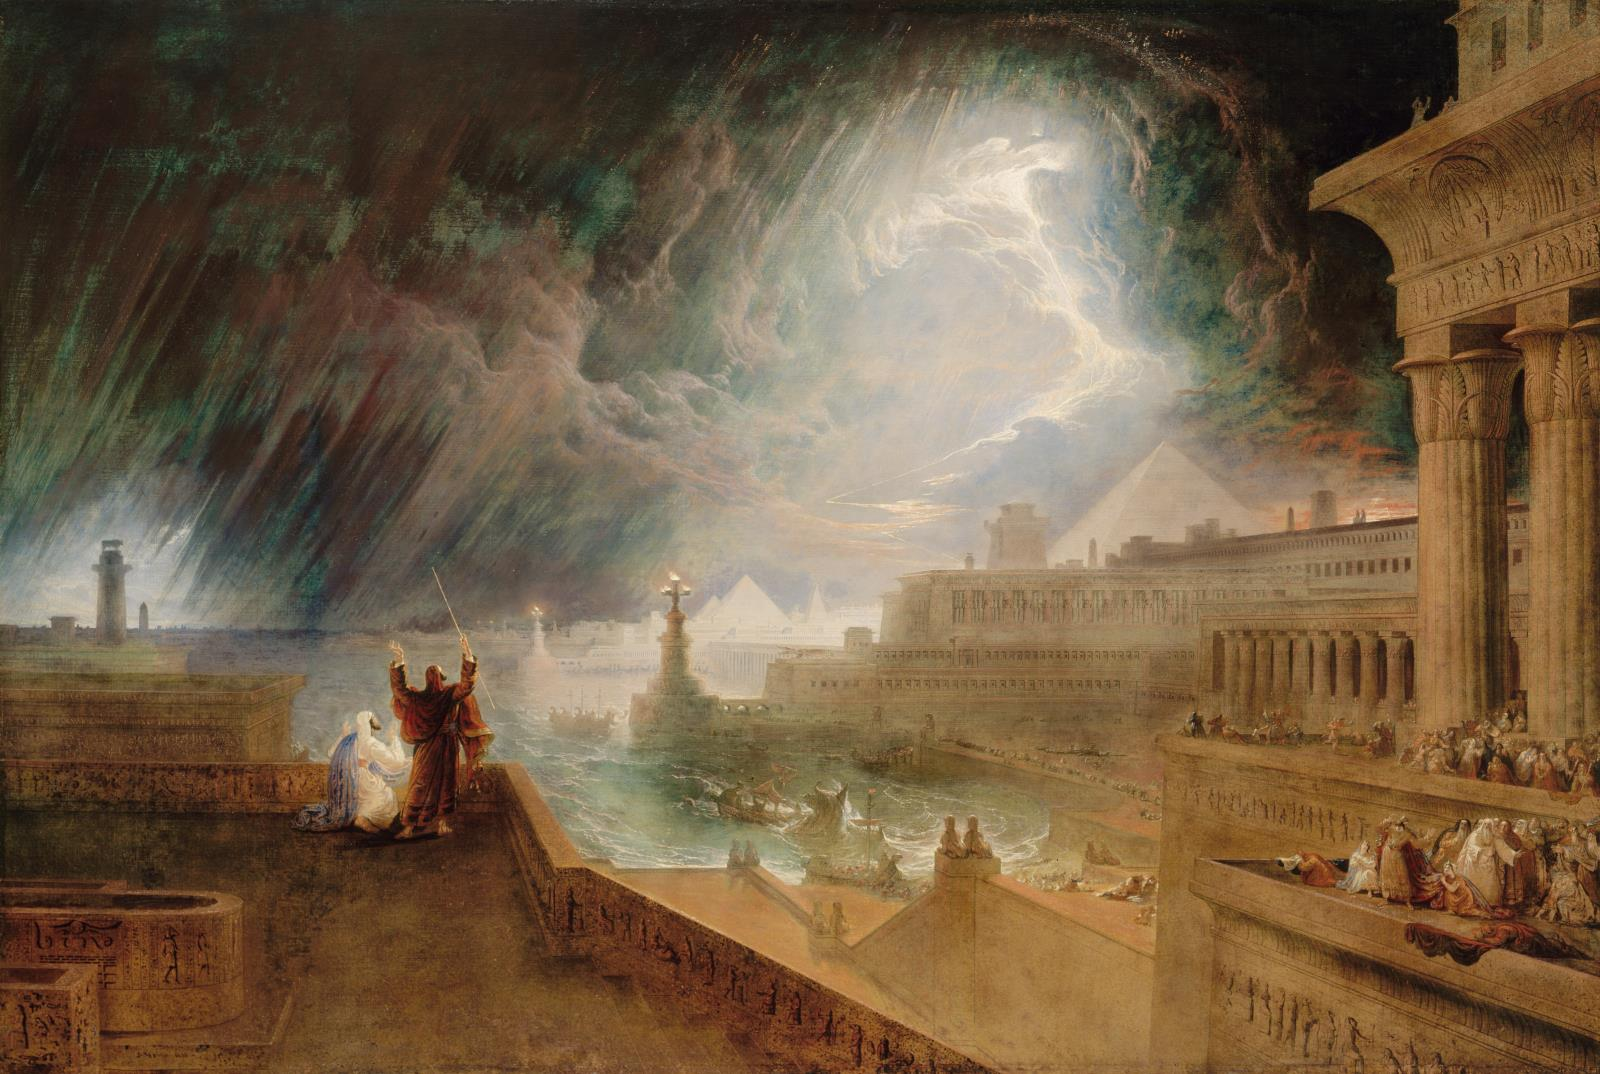 File:Martin, John - The Seventh Plague - 1823.jpg